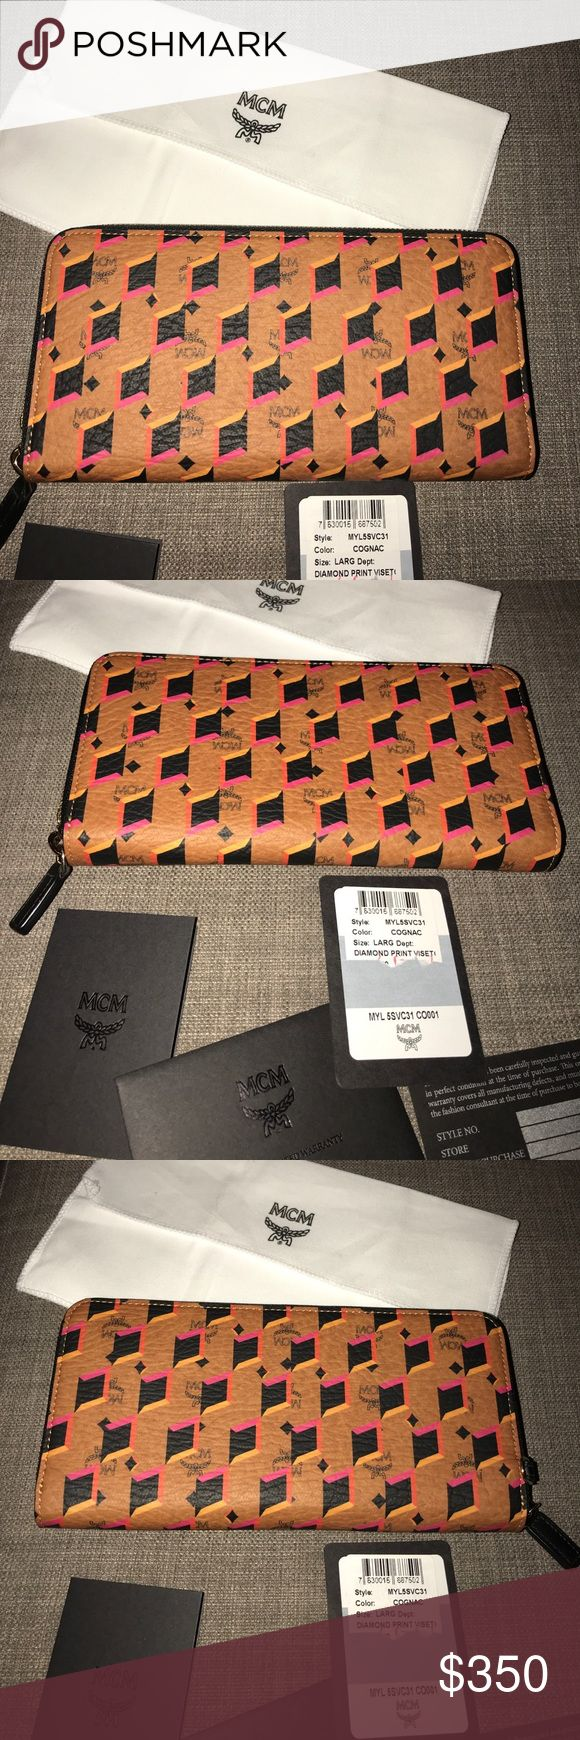 MCM Dimond Zipper Wallet AUTHENTIC New AUTHENTIC MCM zipper wallet bought here on PoshMark ended up not using it so selling it comes with tags and MCM dust bag perfect for MCM tote bag colors are fabulous.  ALL SALES ARE FINAL NO RETURNS MY items come from a smoke and pet free home. MCM Bags Wallets